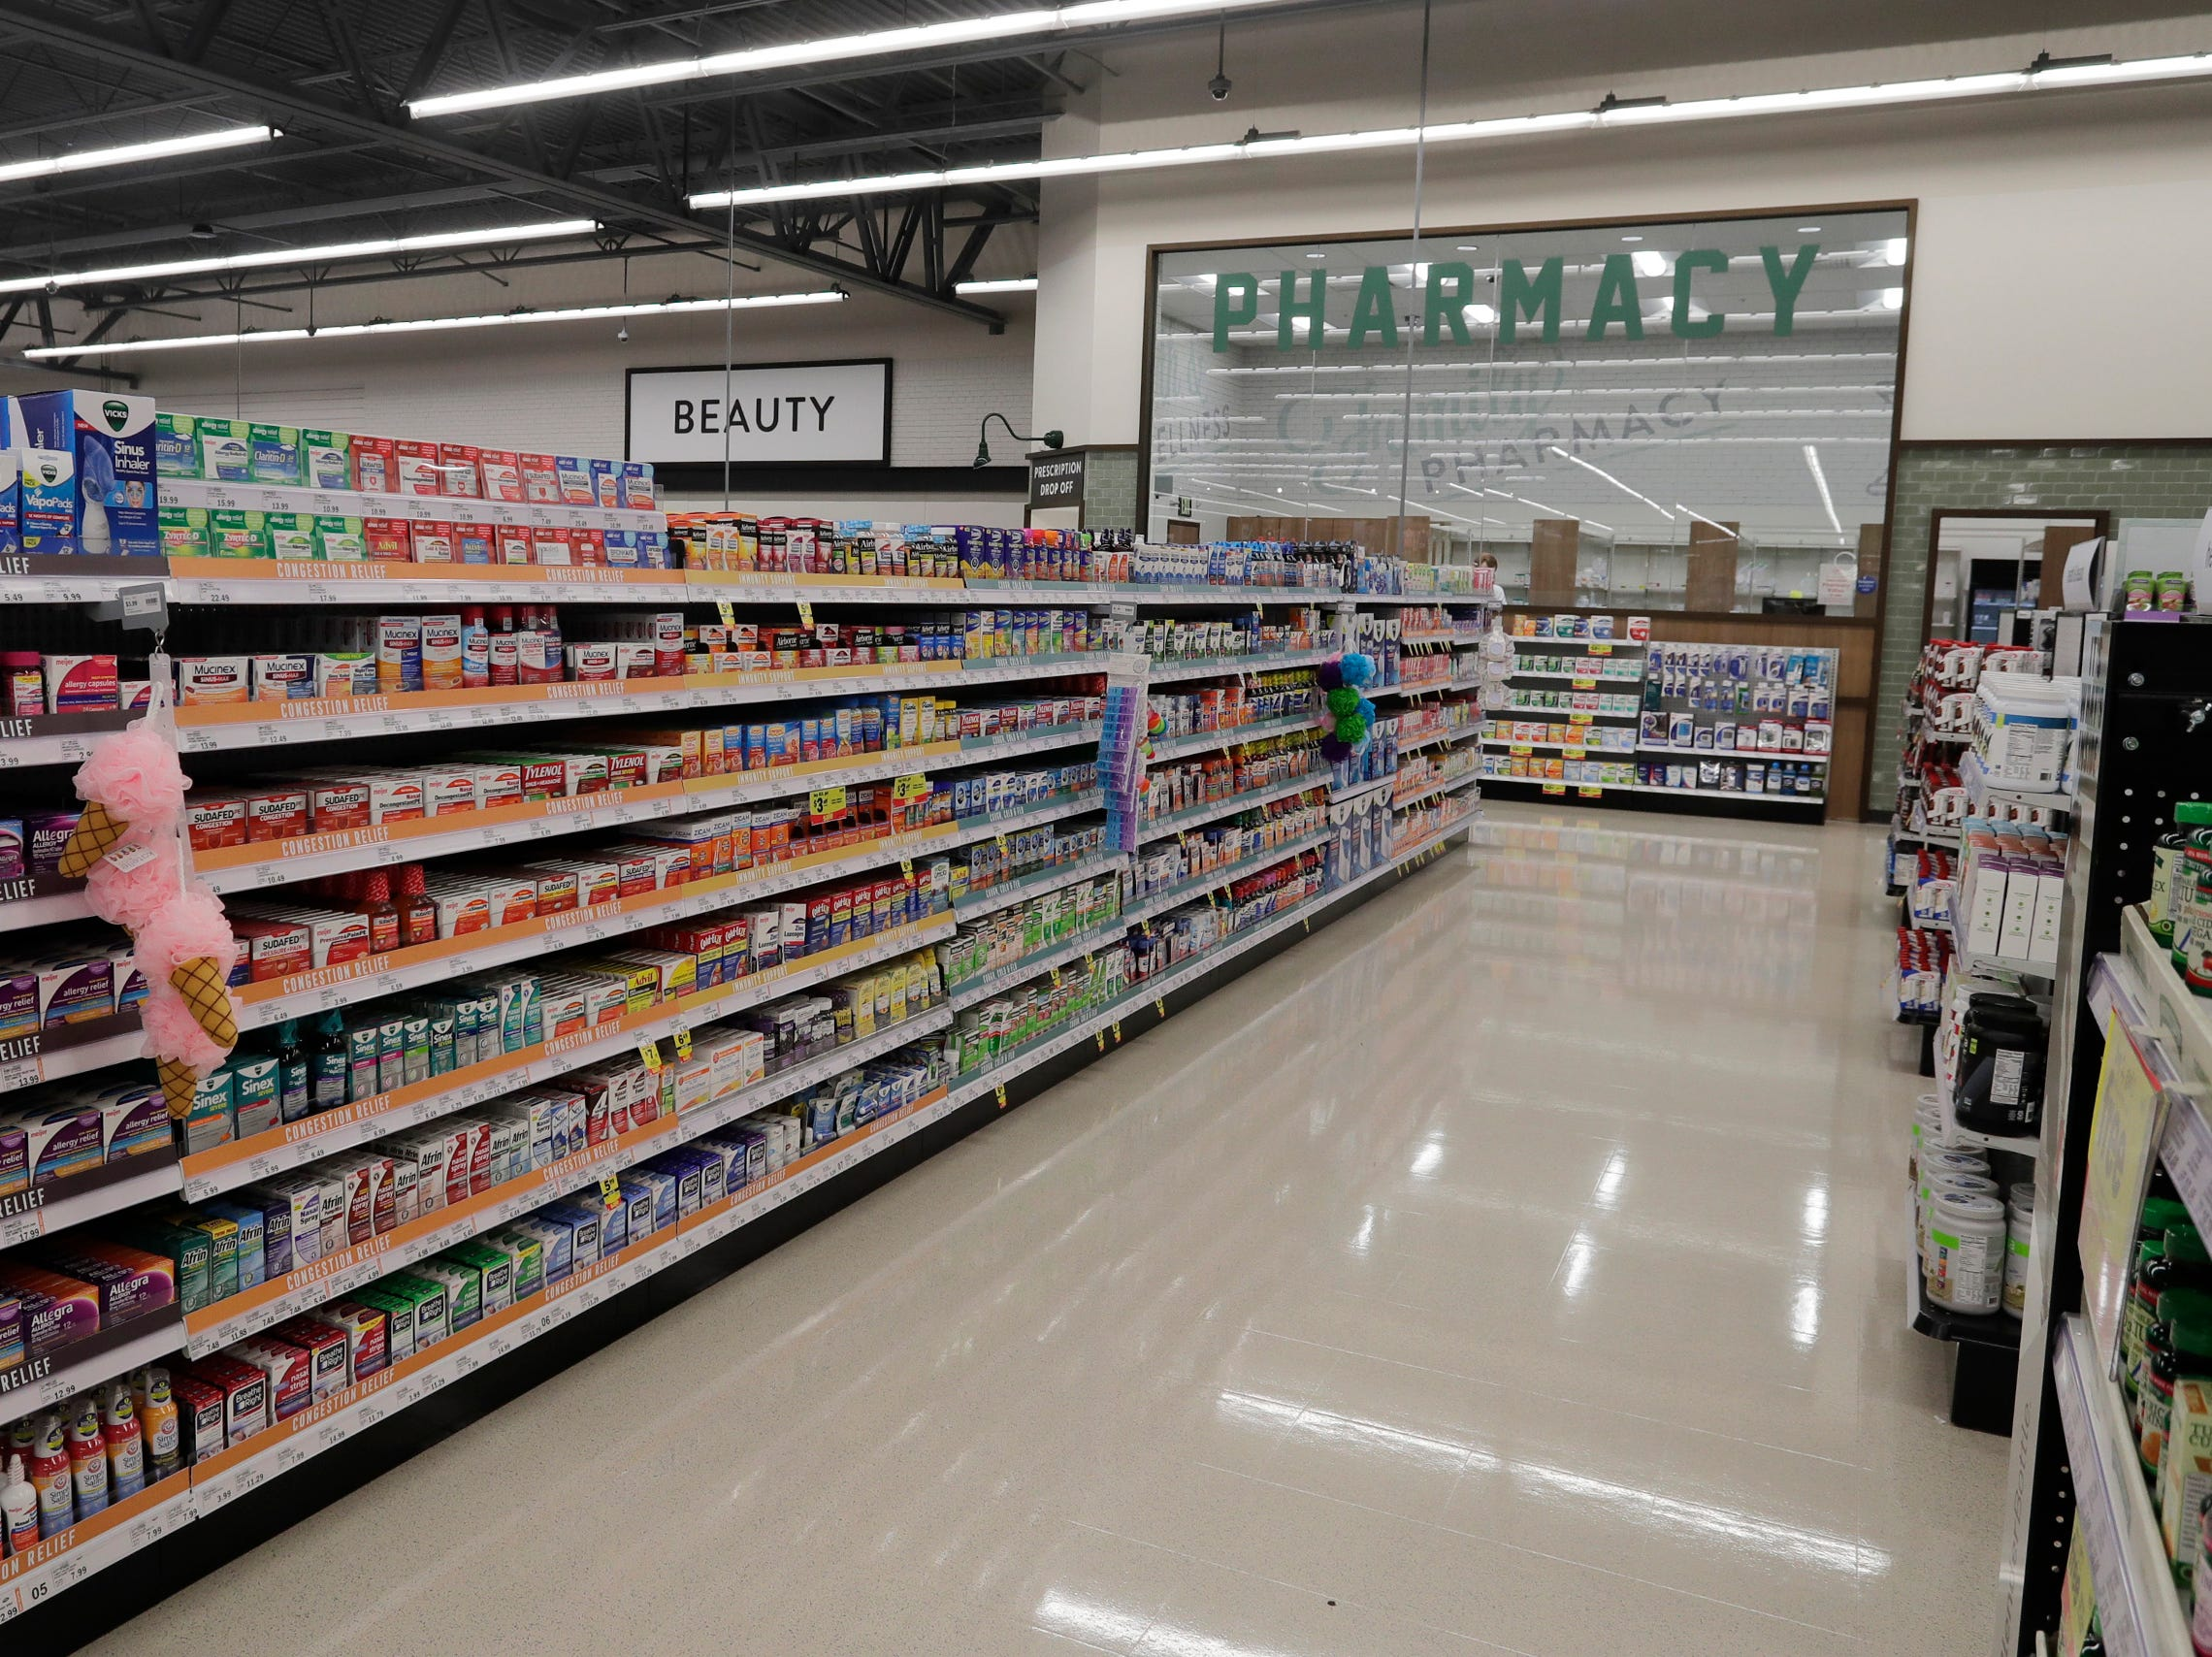 A view at the pharmacy at Meijer, Thursday April 25, 2019, in Sheboygan, Wis. The 155,000-square-foot supercenter has 300 employees on opening day.